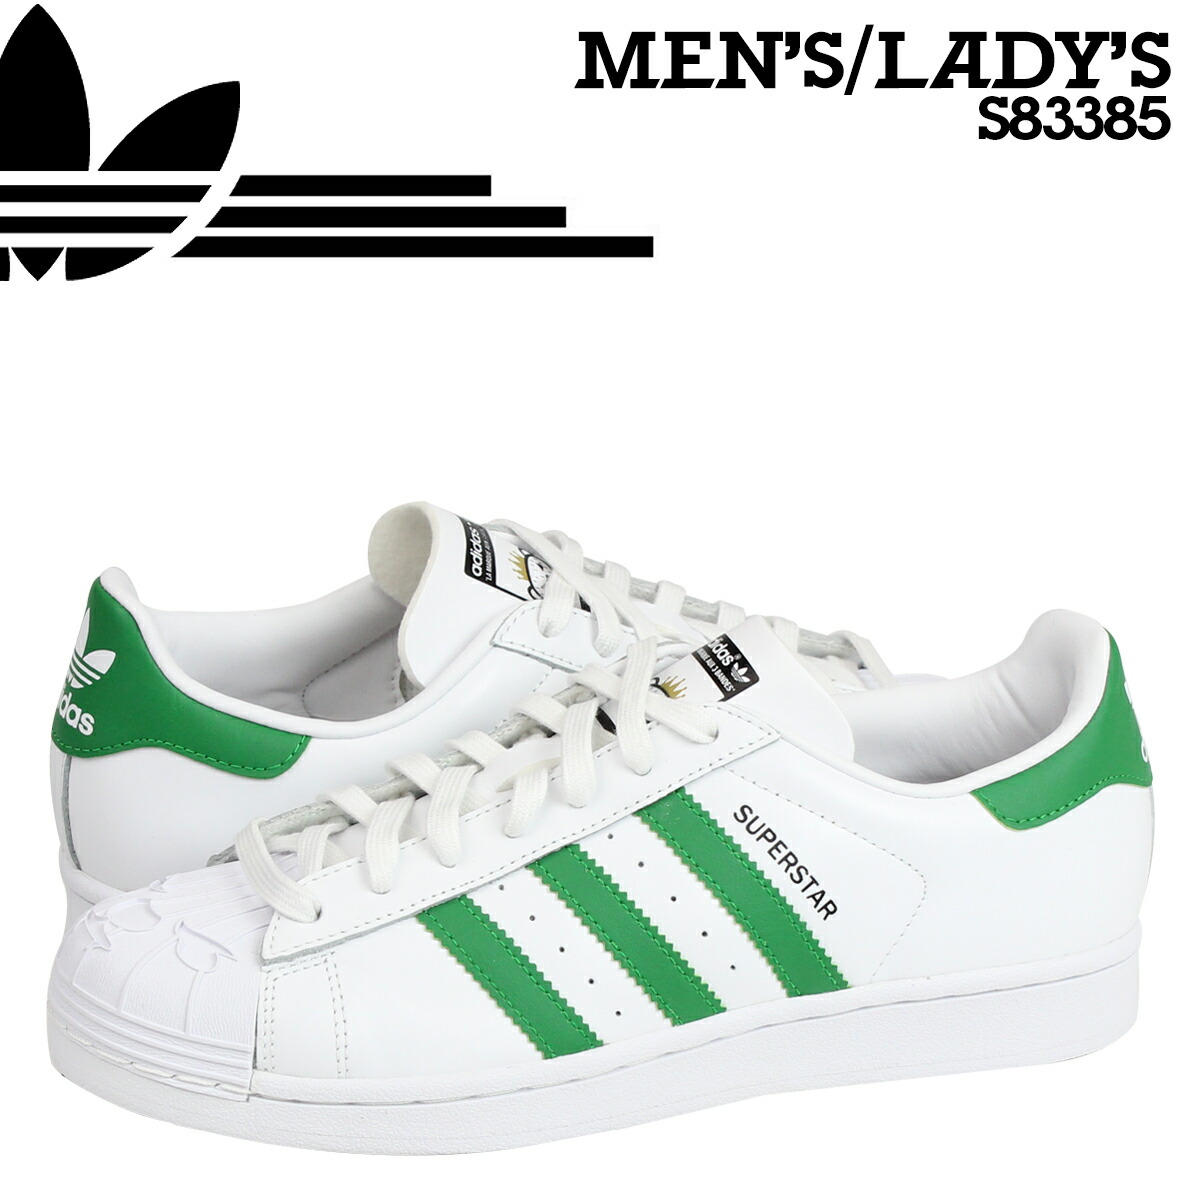 Adidas Superstar Green And White